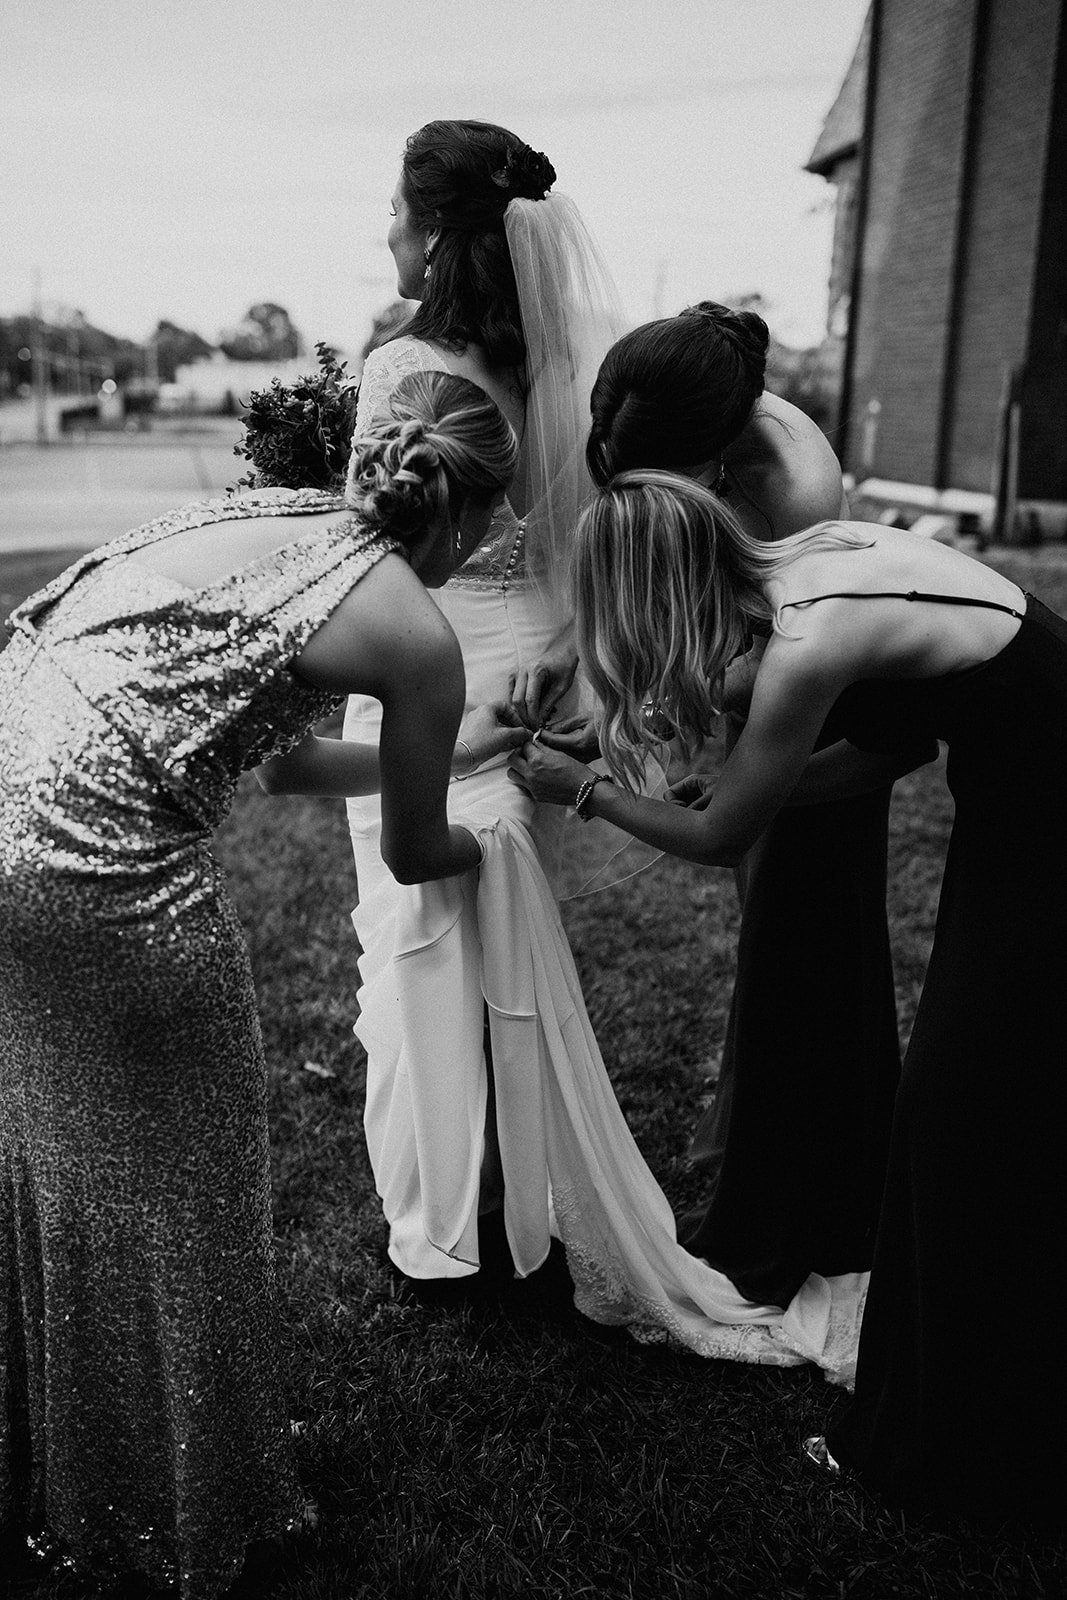 Three women bustle a bride's dress.